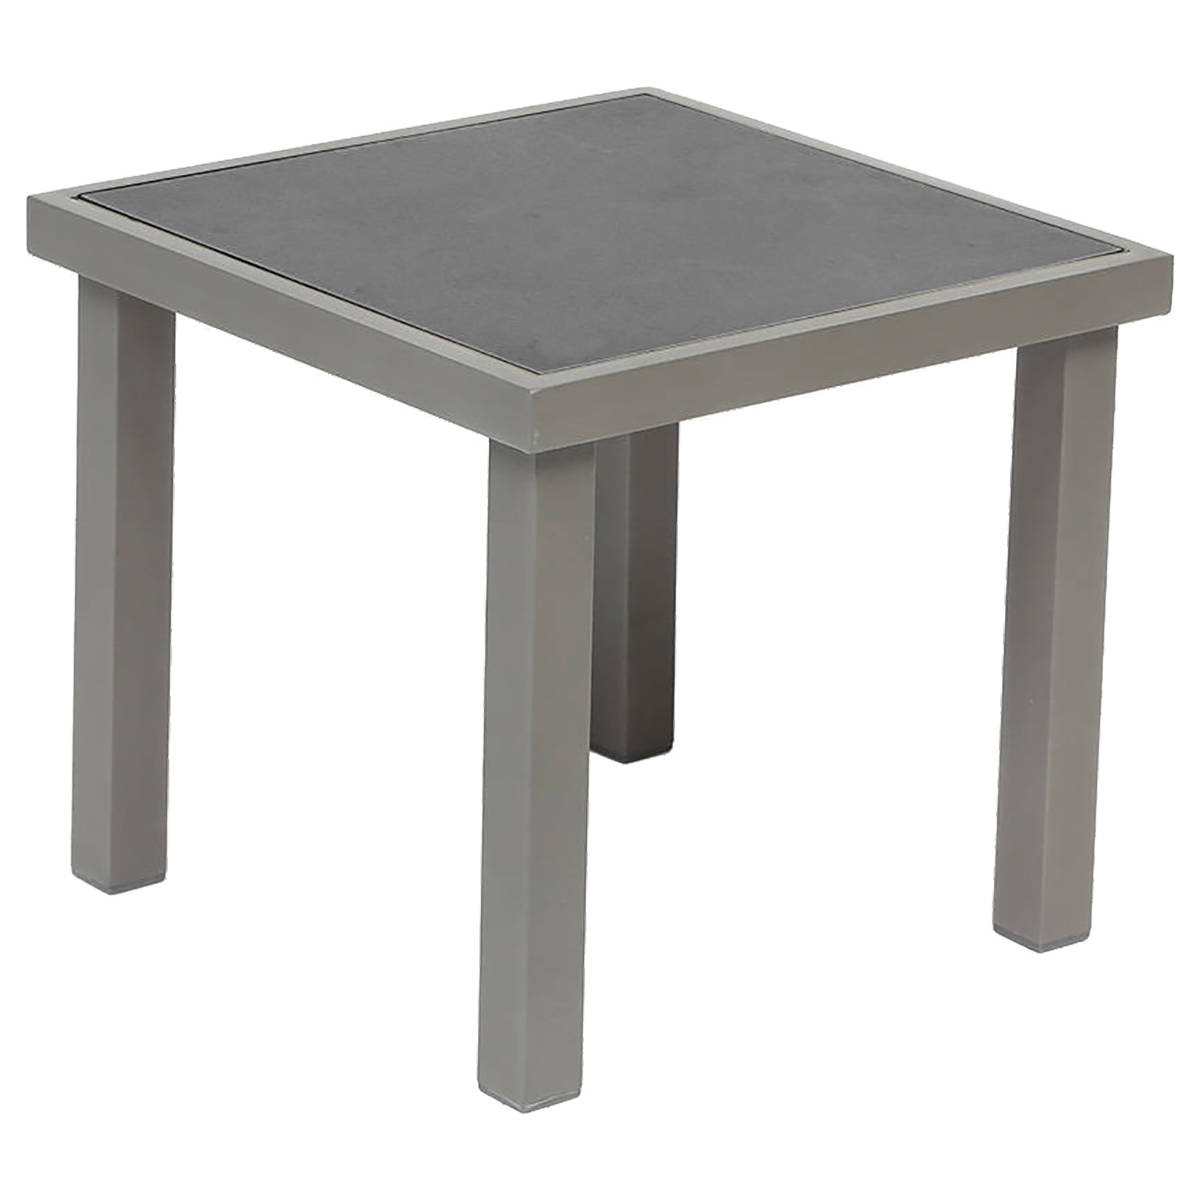 Table D Appoint De Jardin Table D 39appoint De Jardin Carrée Piazza Taupe And Mastic